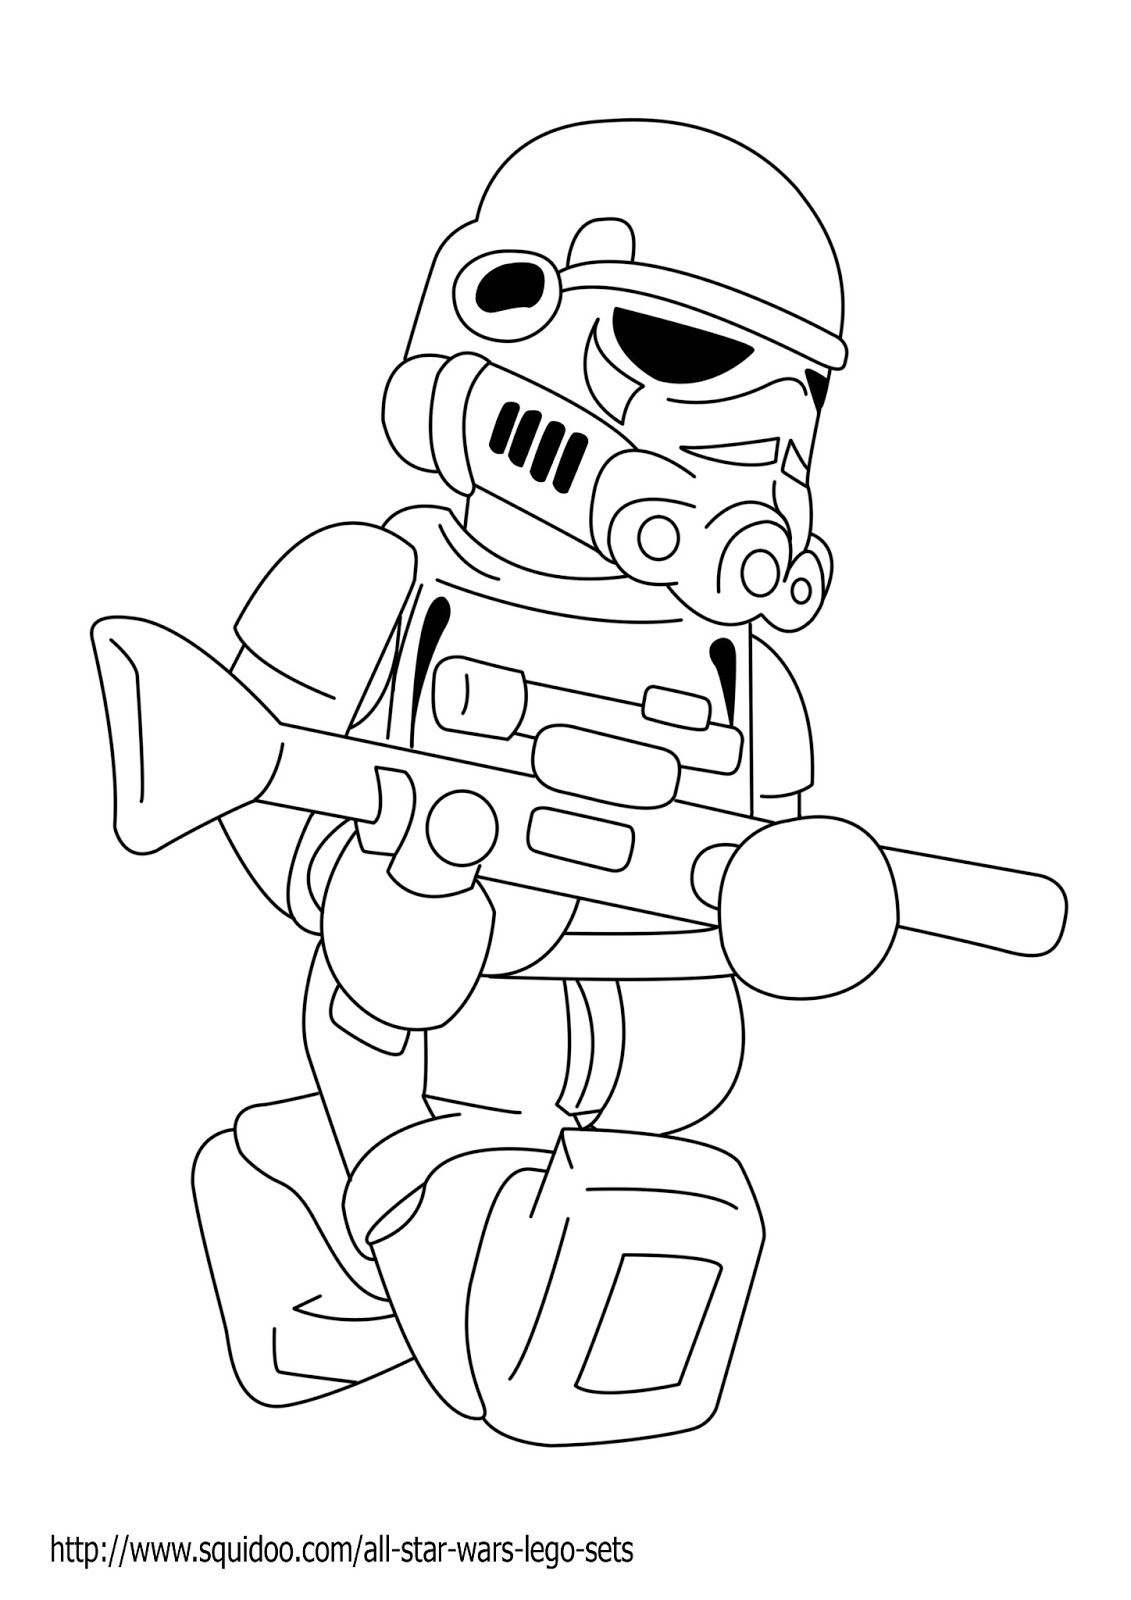 lego star wars coloring pages | Printable Star Wars Coloring Pages ...